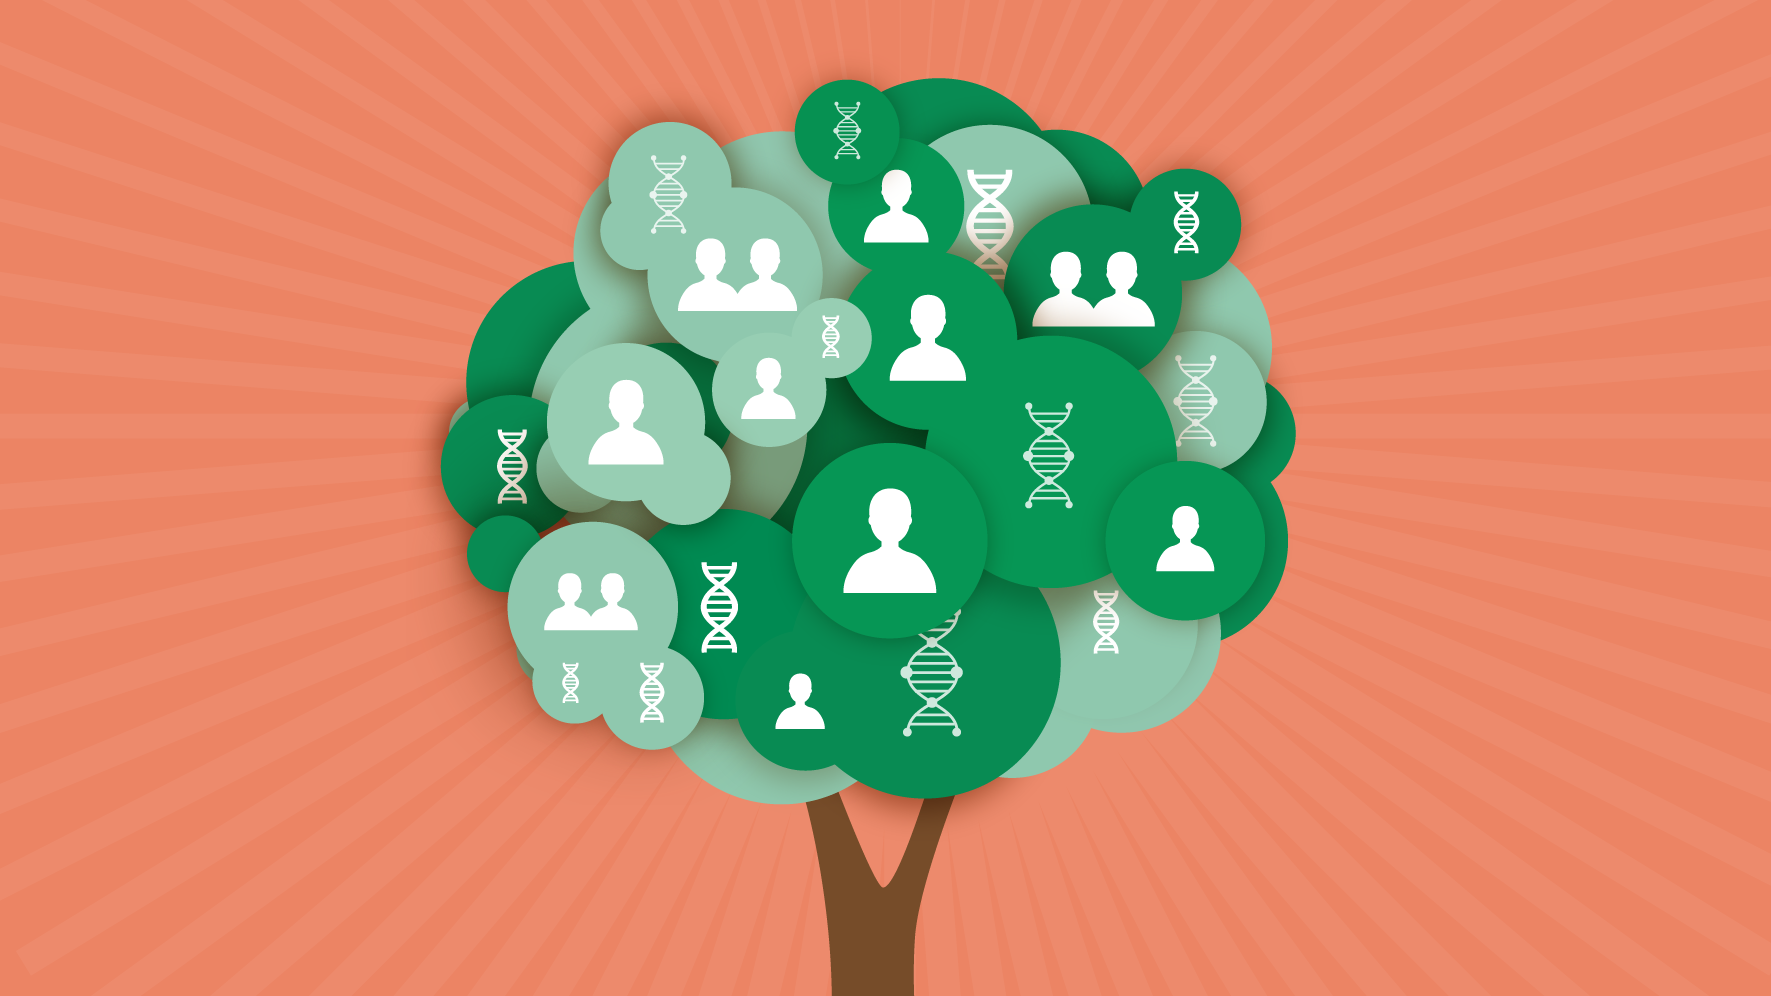 Illustration depicting how cancer genetic testing can impact your family tree